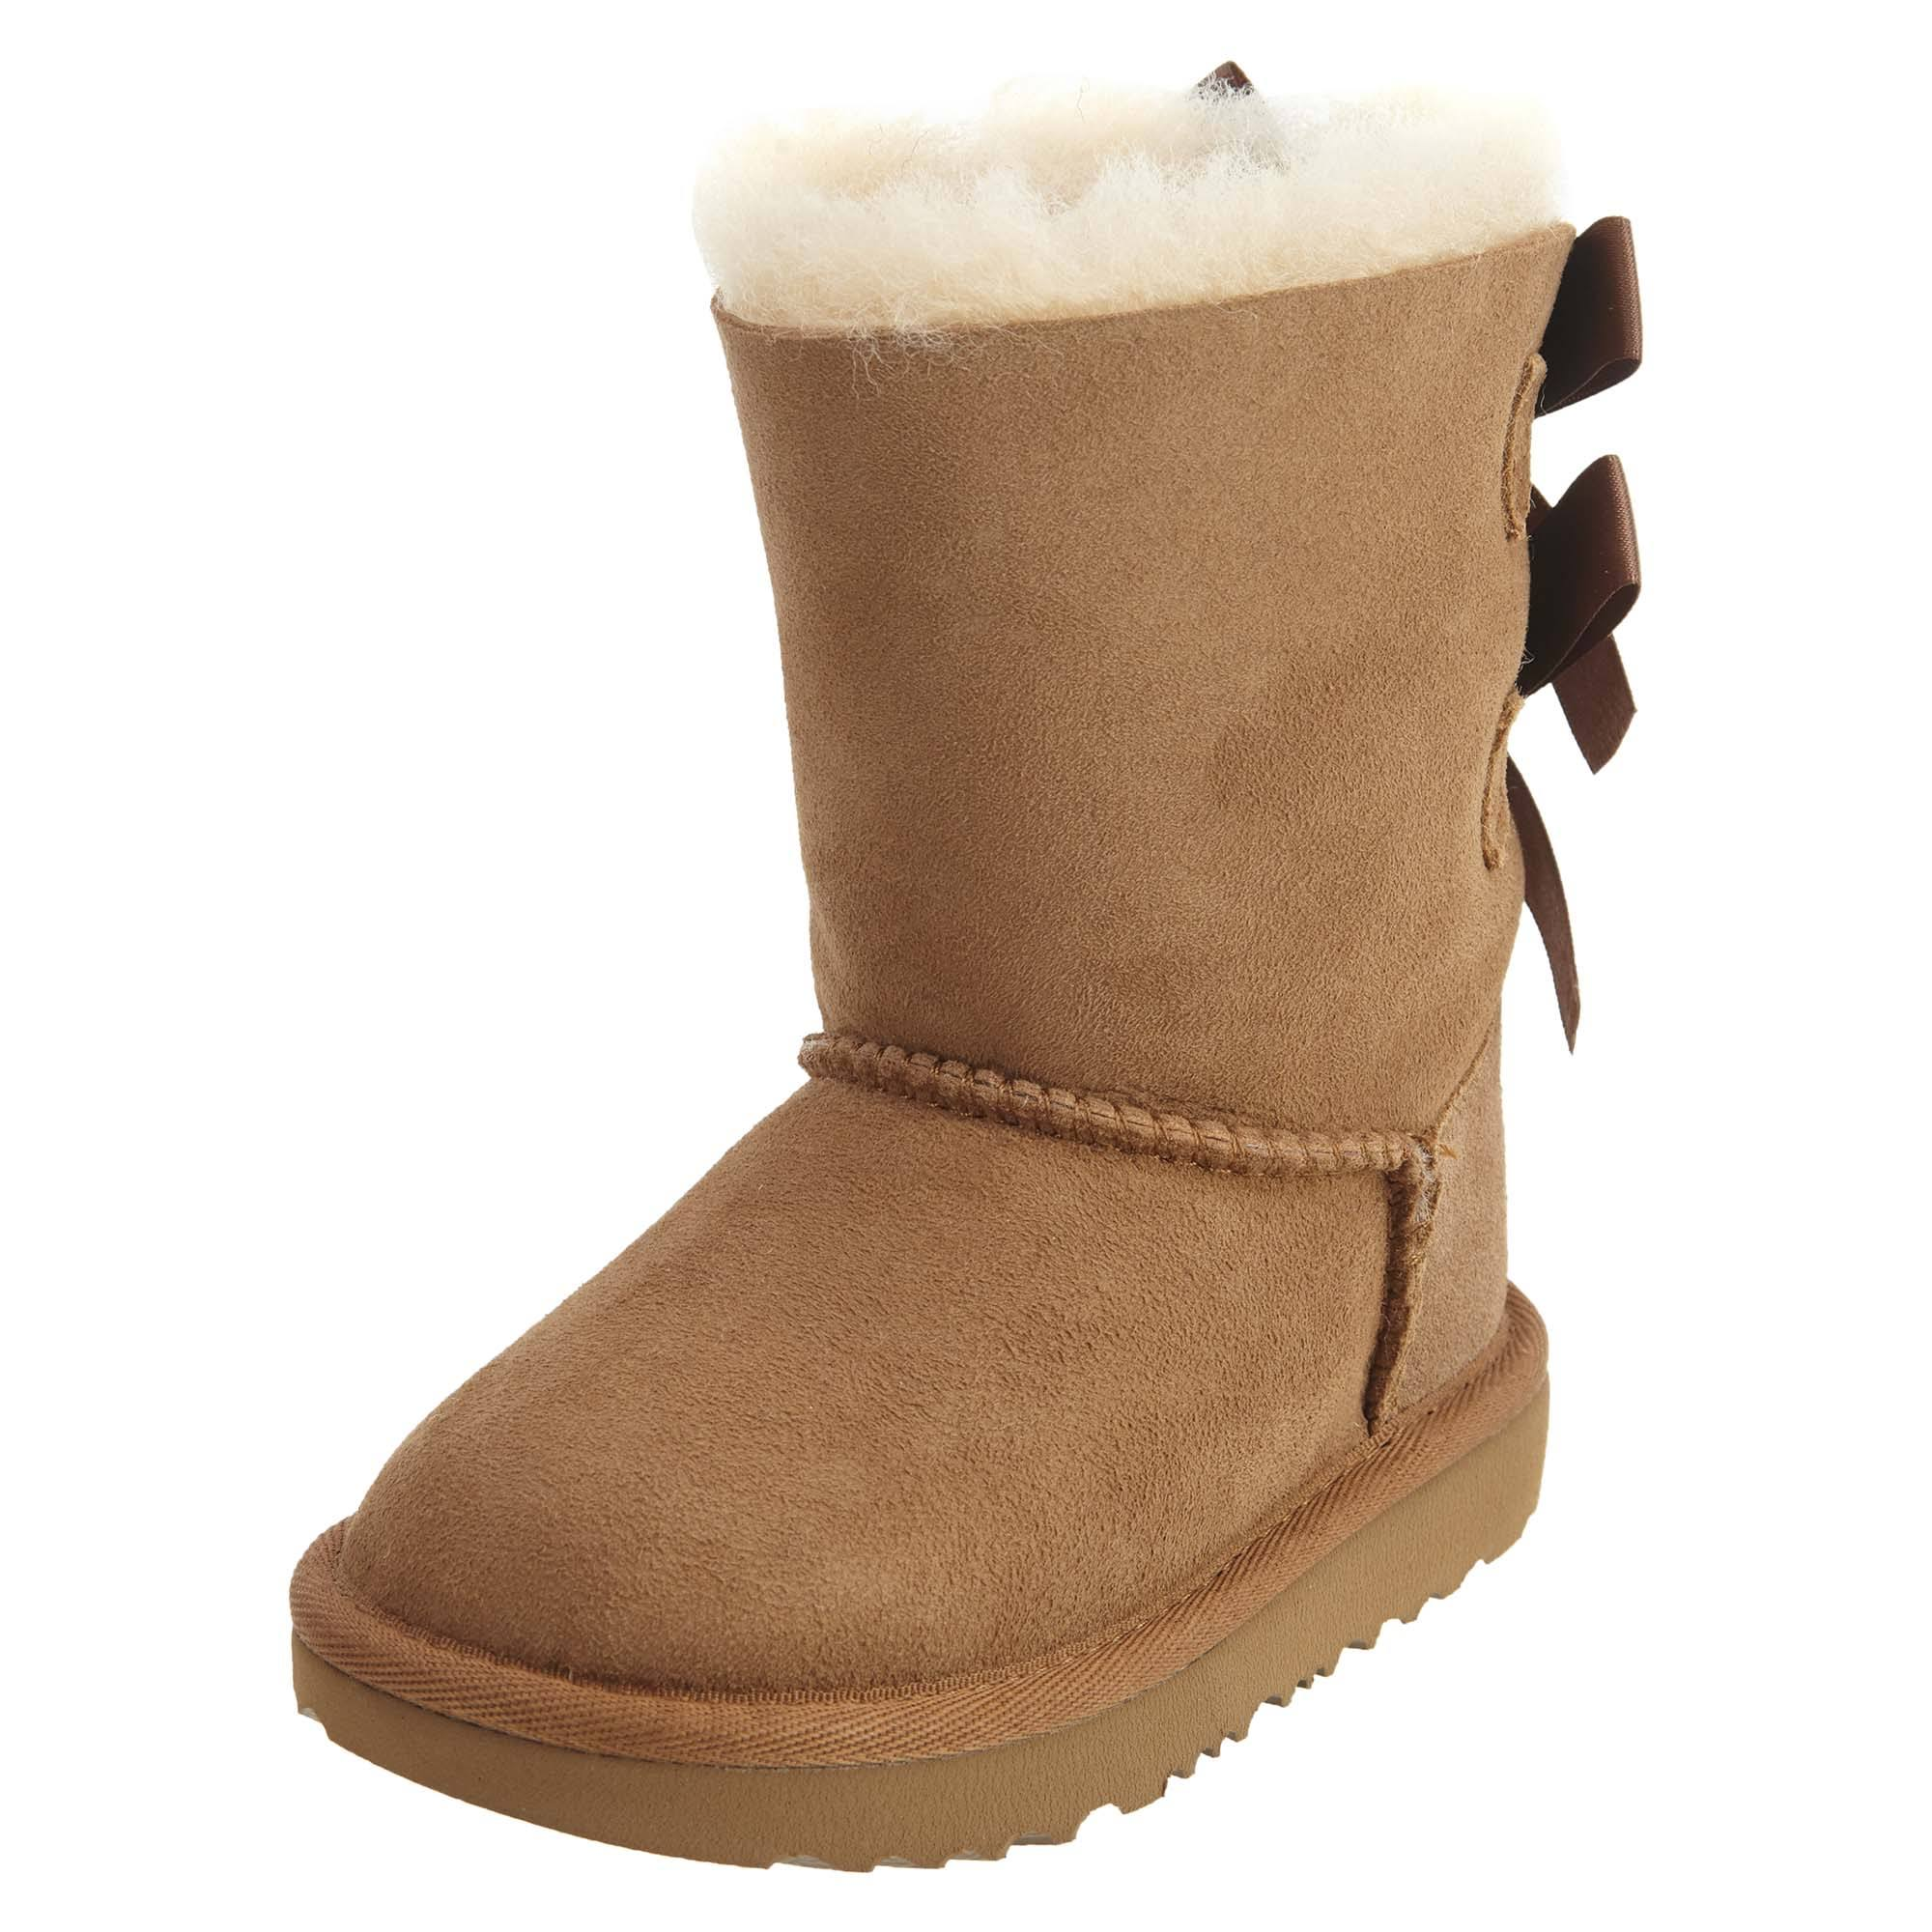 Bow Ii Chestnut 1017394t Sku Toddlers Bailey Ugg wgEOw